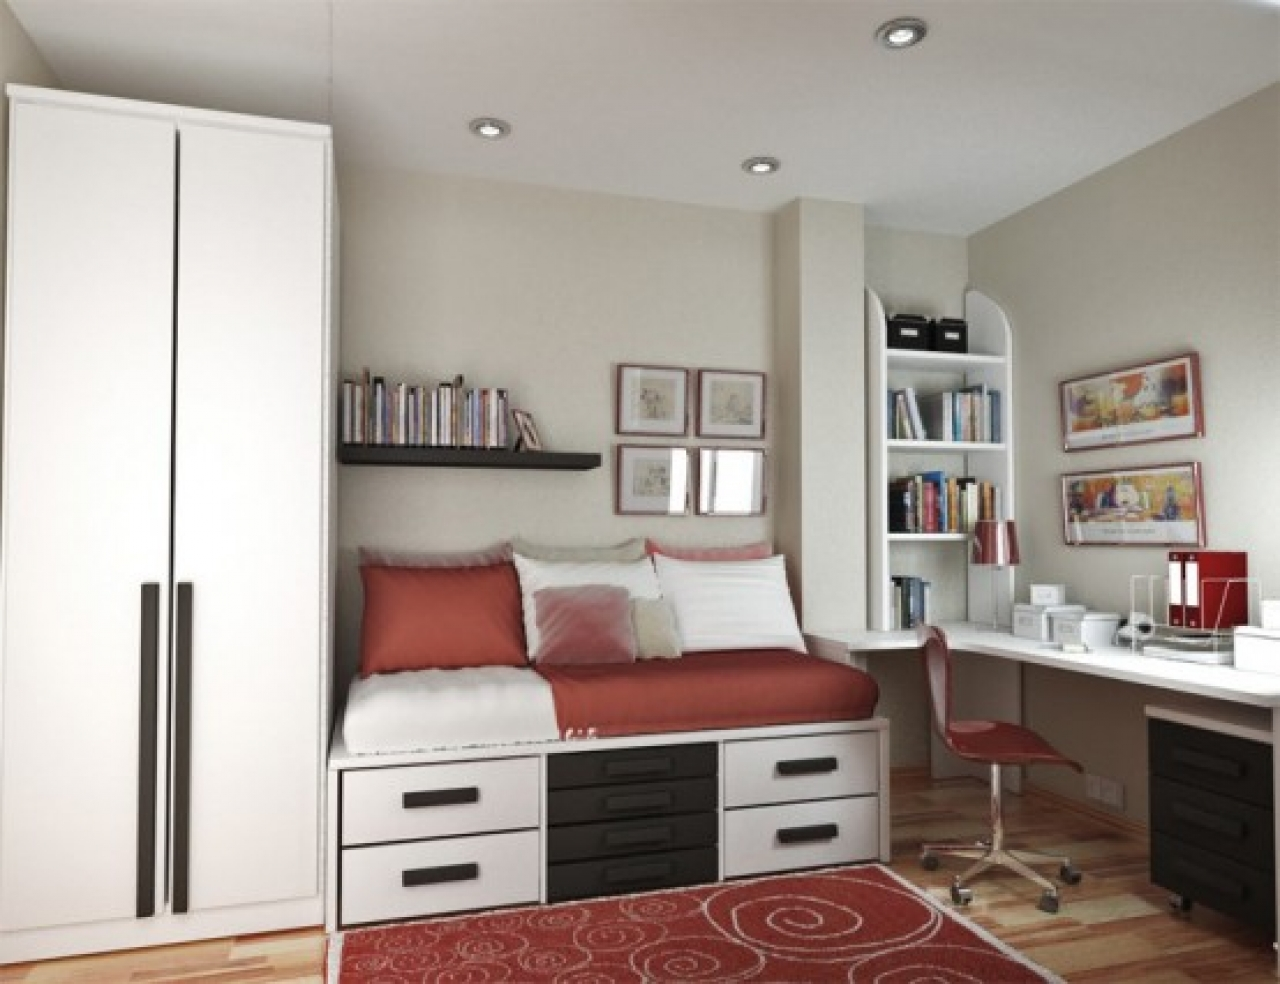 Simple Bedroom Ideas Turn To Colors (View 8 of 18)